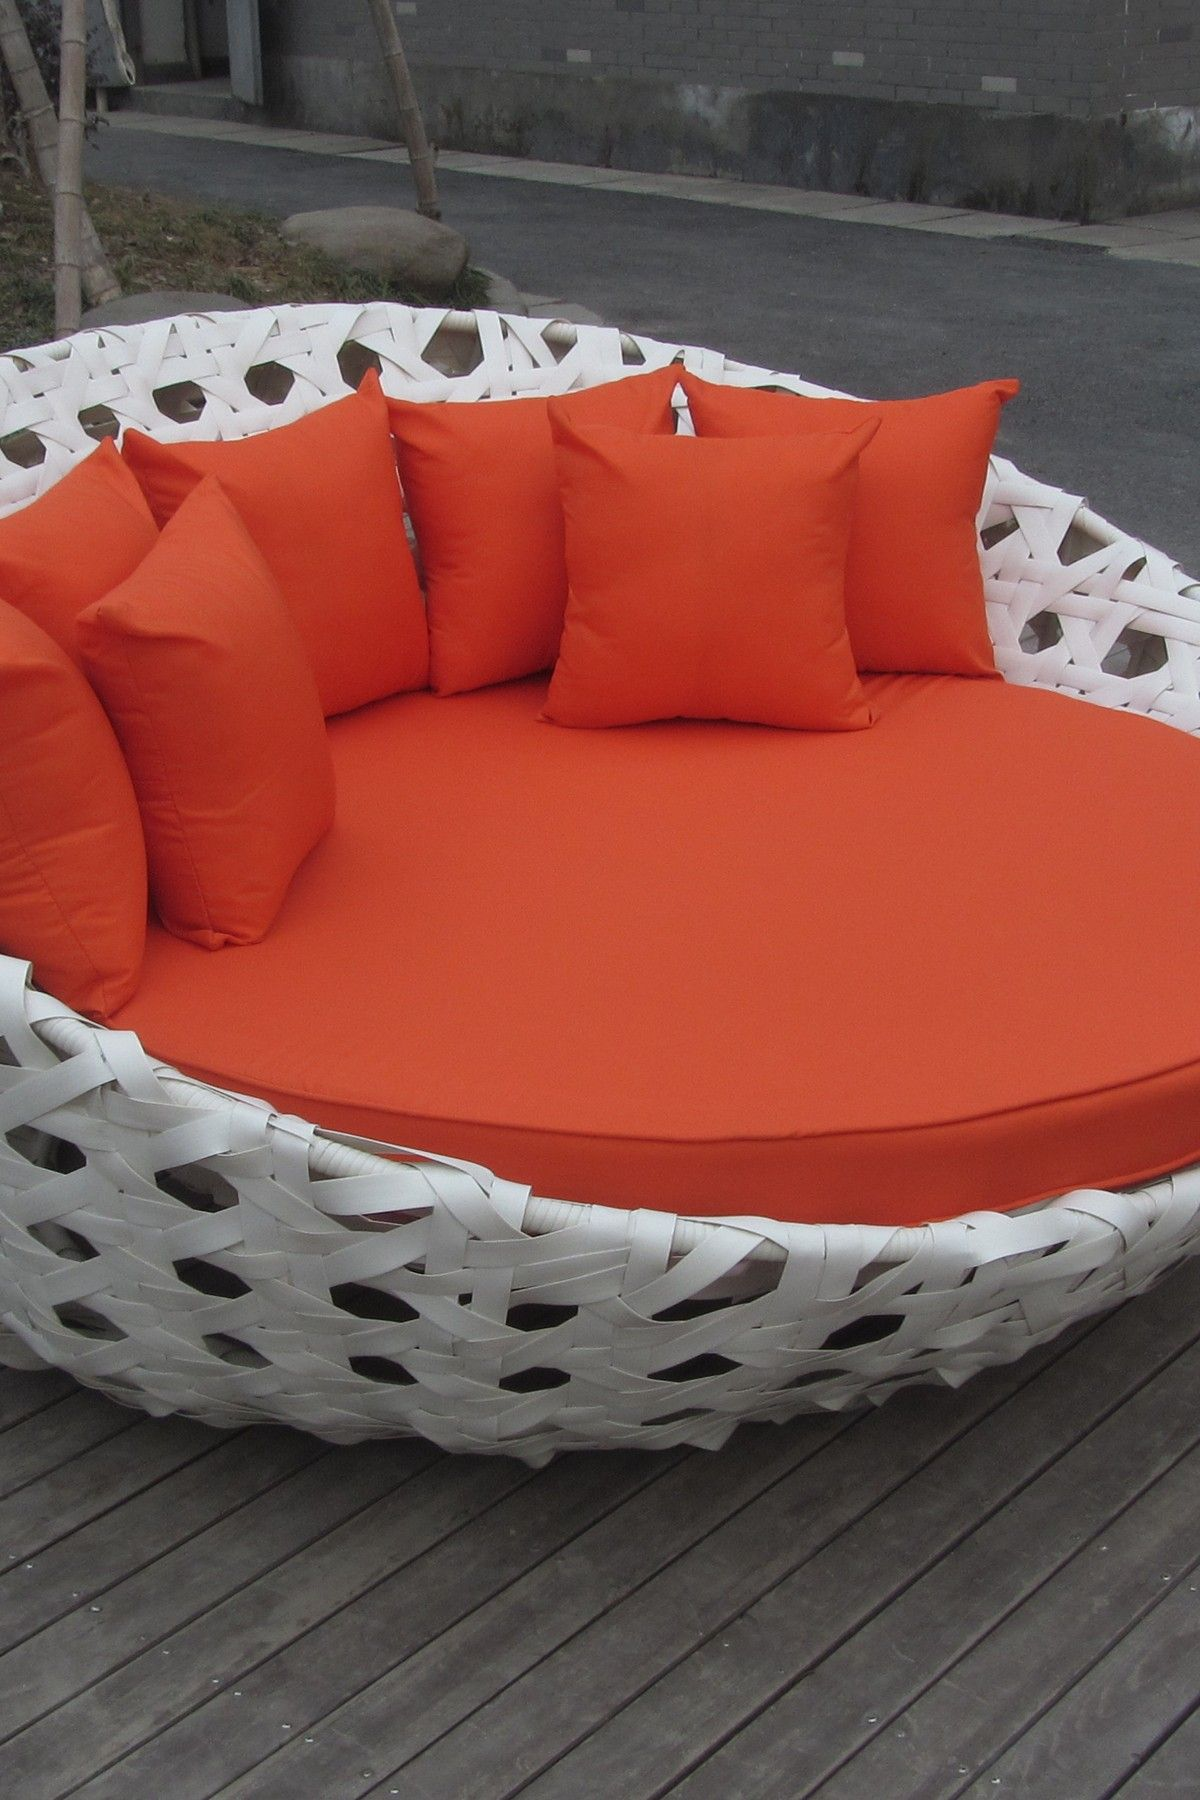 Outdoor Daybed . | Outdoor daybed, House styles, My dream home on Living Spaces Outdoor Daybed id=86305